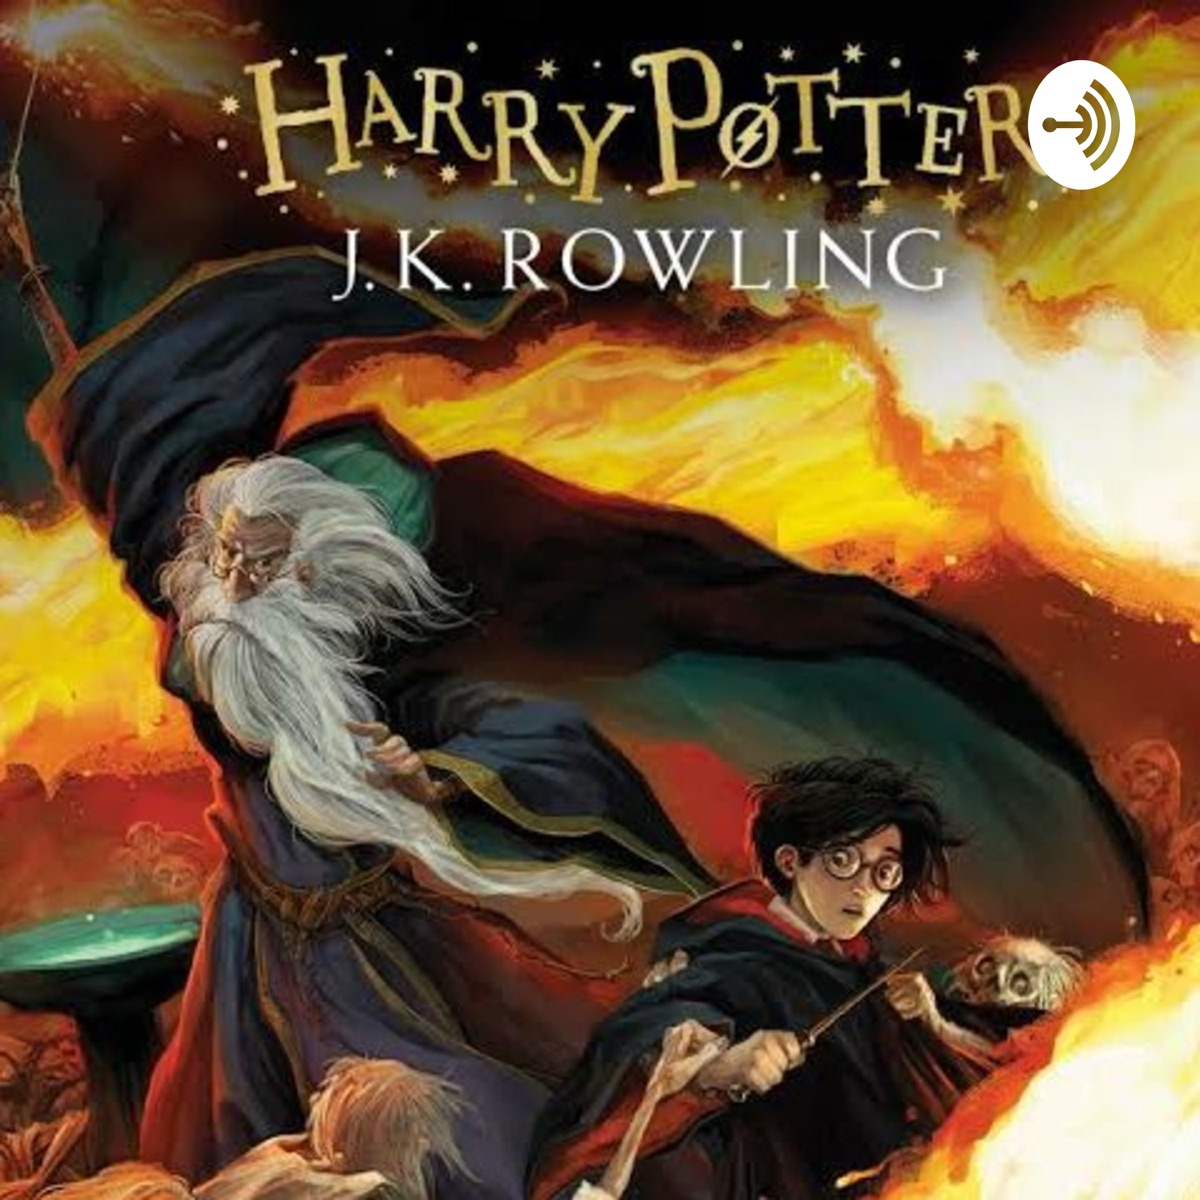 Harrypotter stories By J.k.rowling